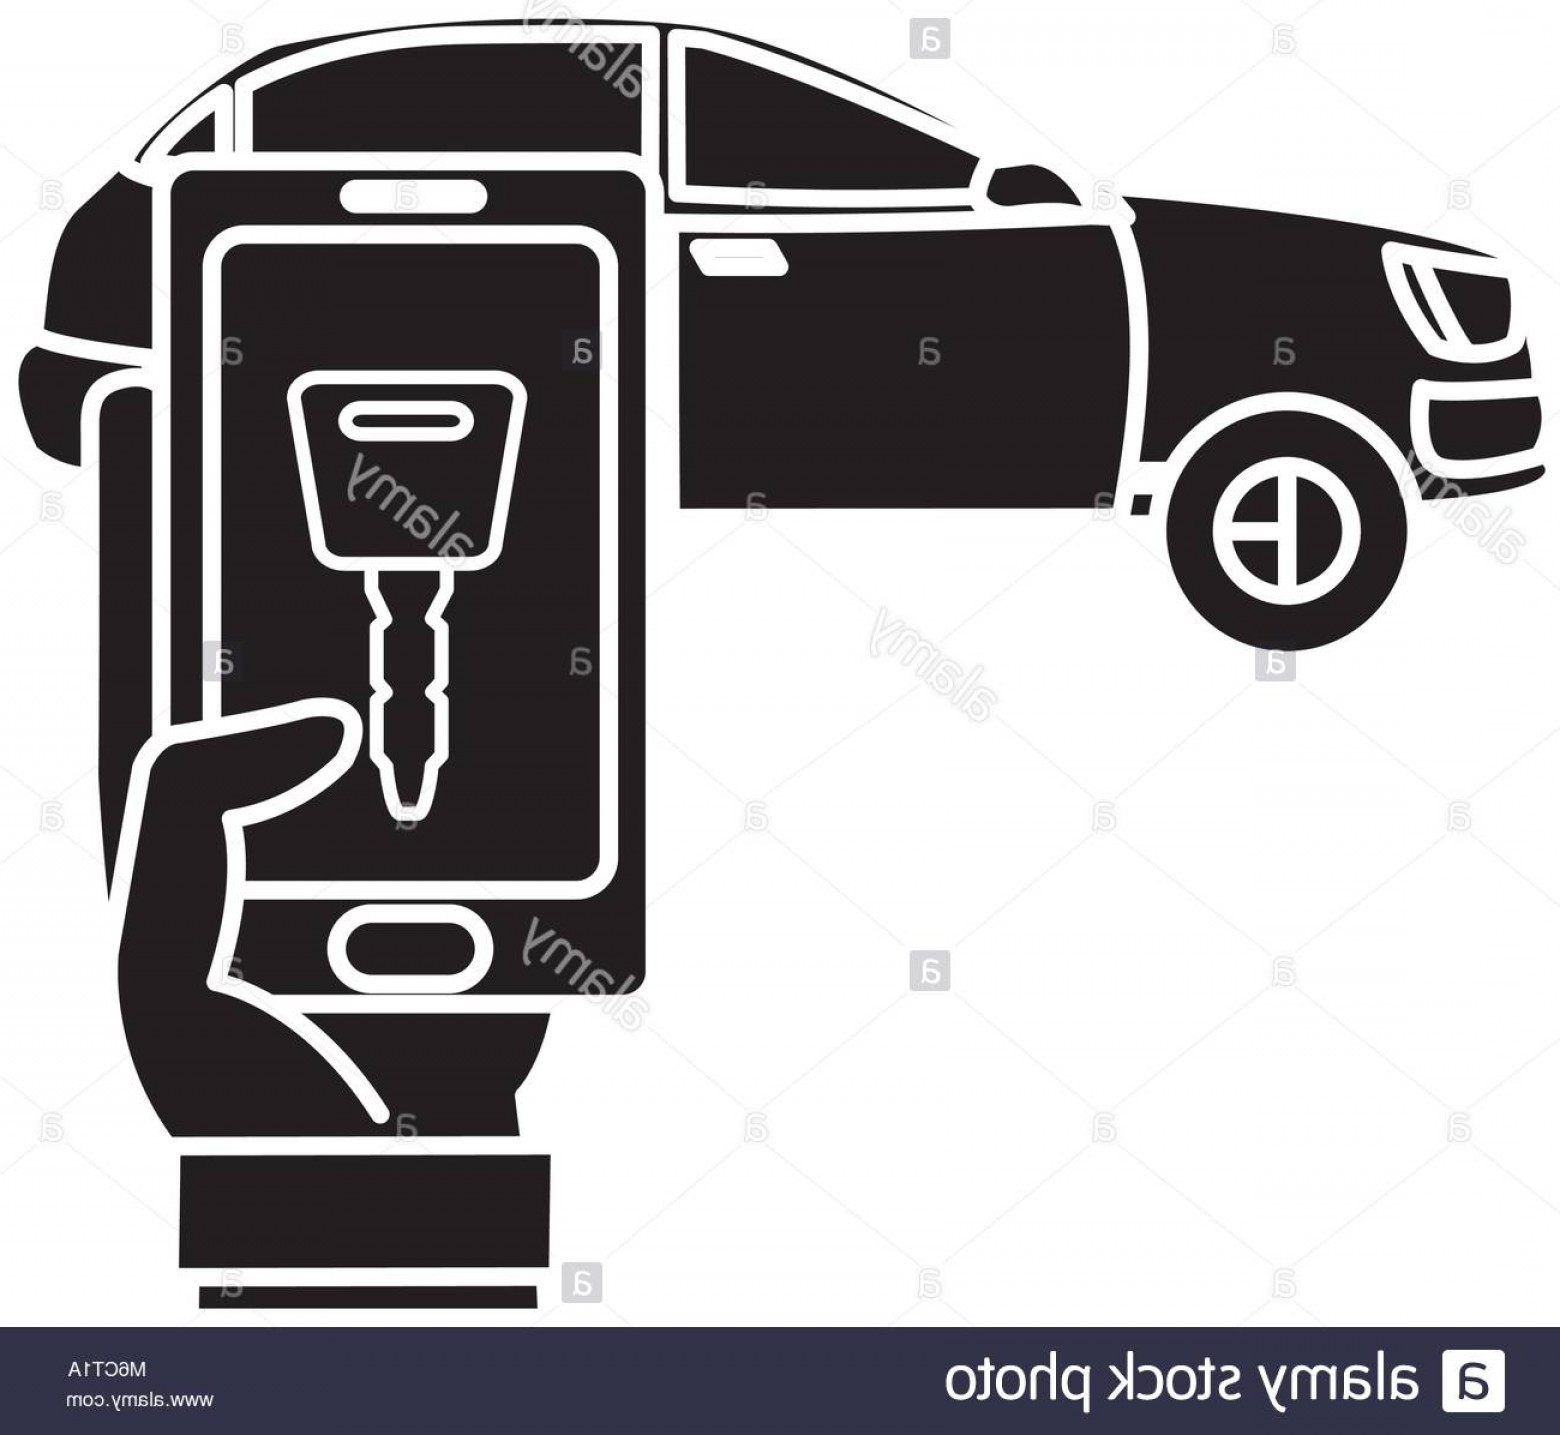 Digital Vector Silhouette: Stock Photo Silhouette Car And Man Hand With Smartphone Digital Key